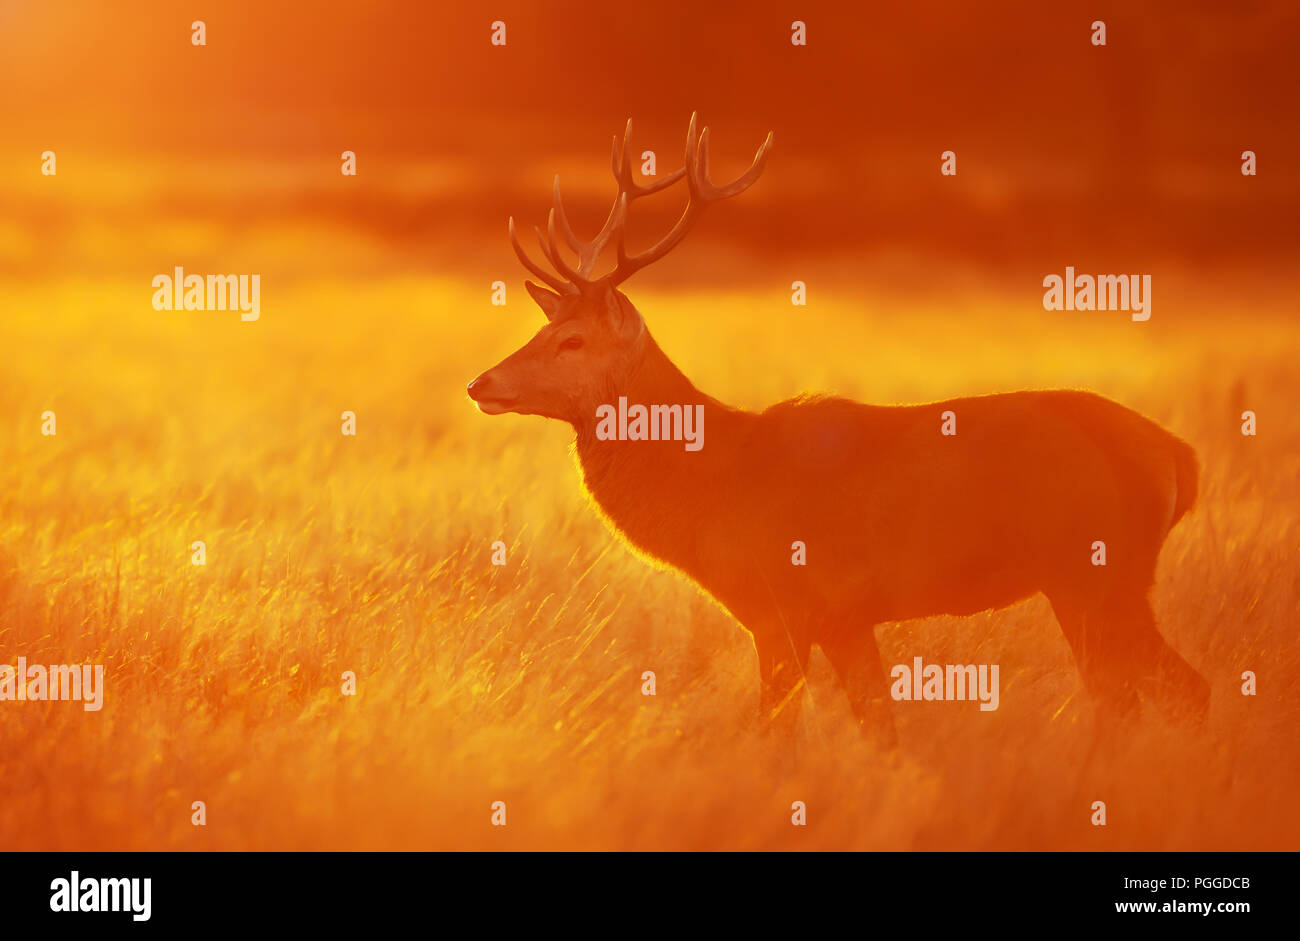 Red deer standing in grass at dawn in autumn, UK. - Stock Image